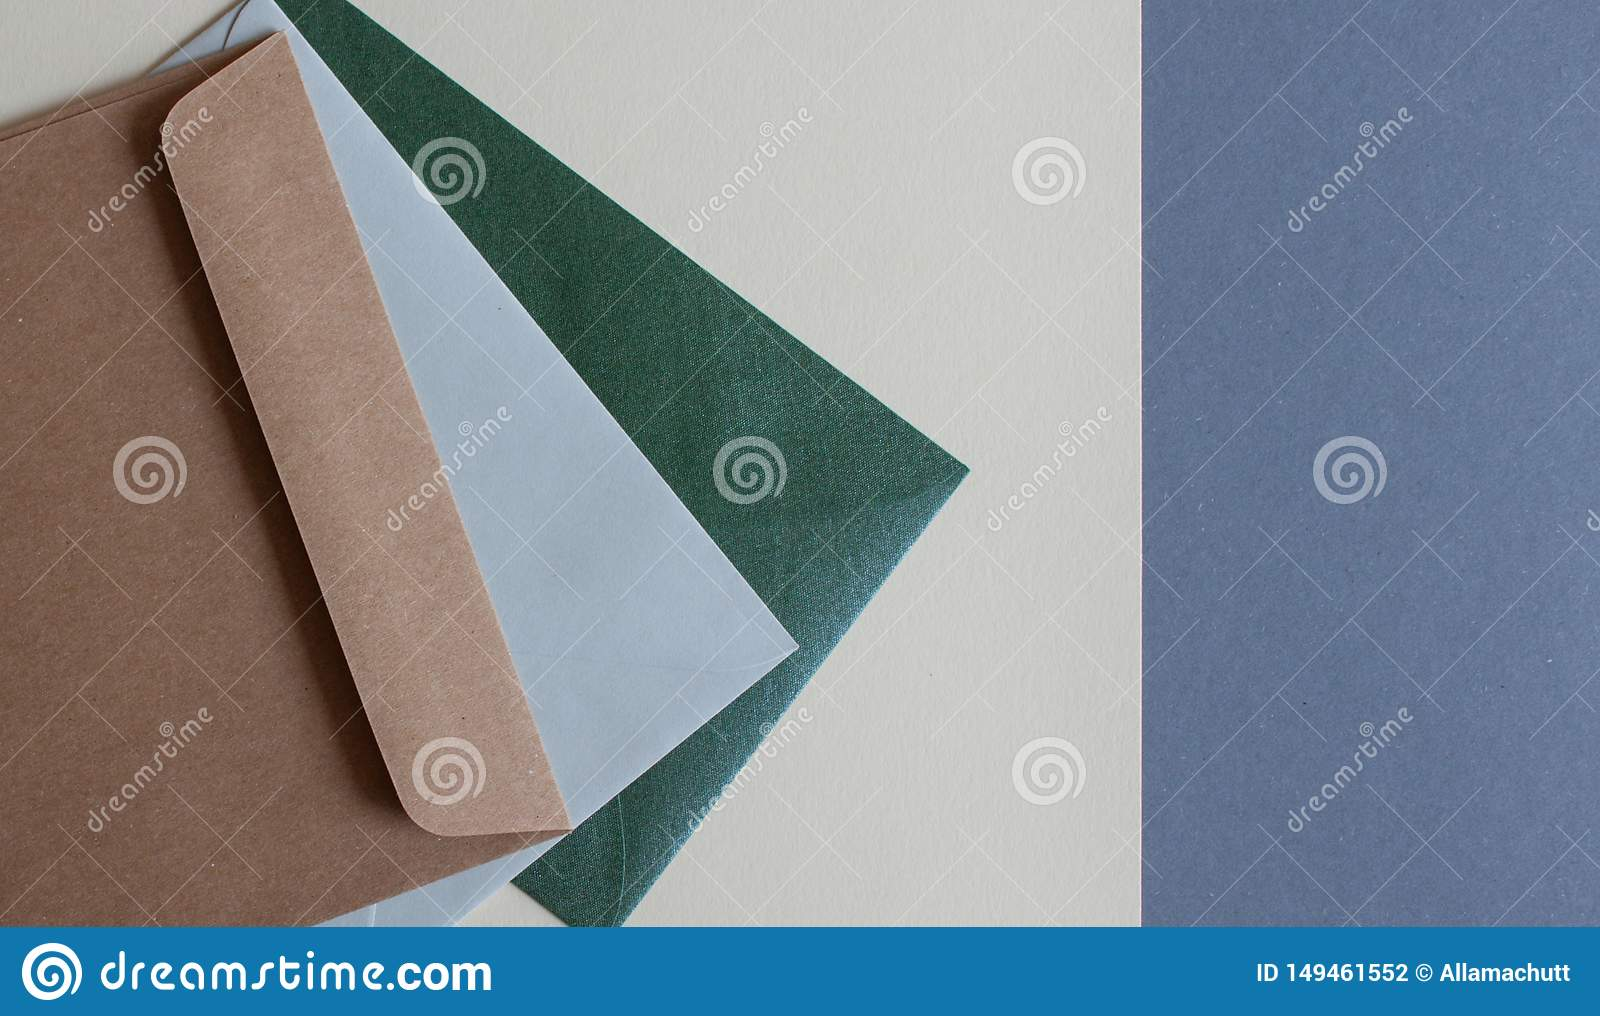 Colorful envelopes on table.